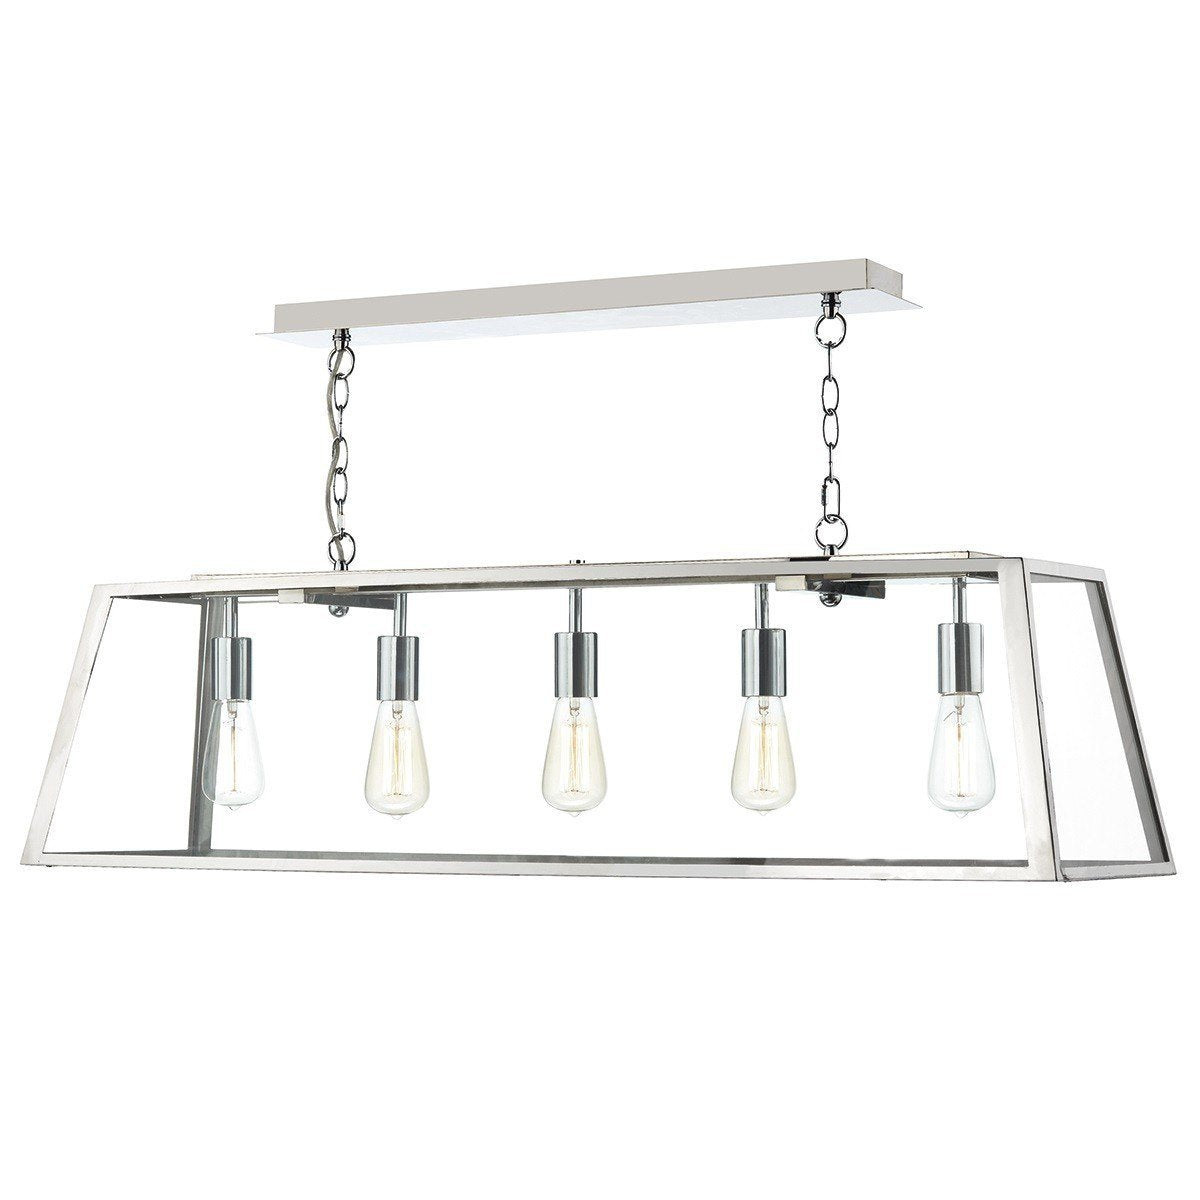 Academy Stainless Steel 5 Lights Pendant Light - London Lighting - 1